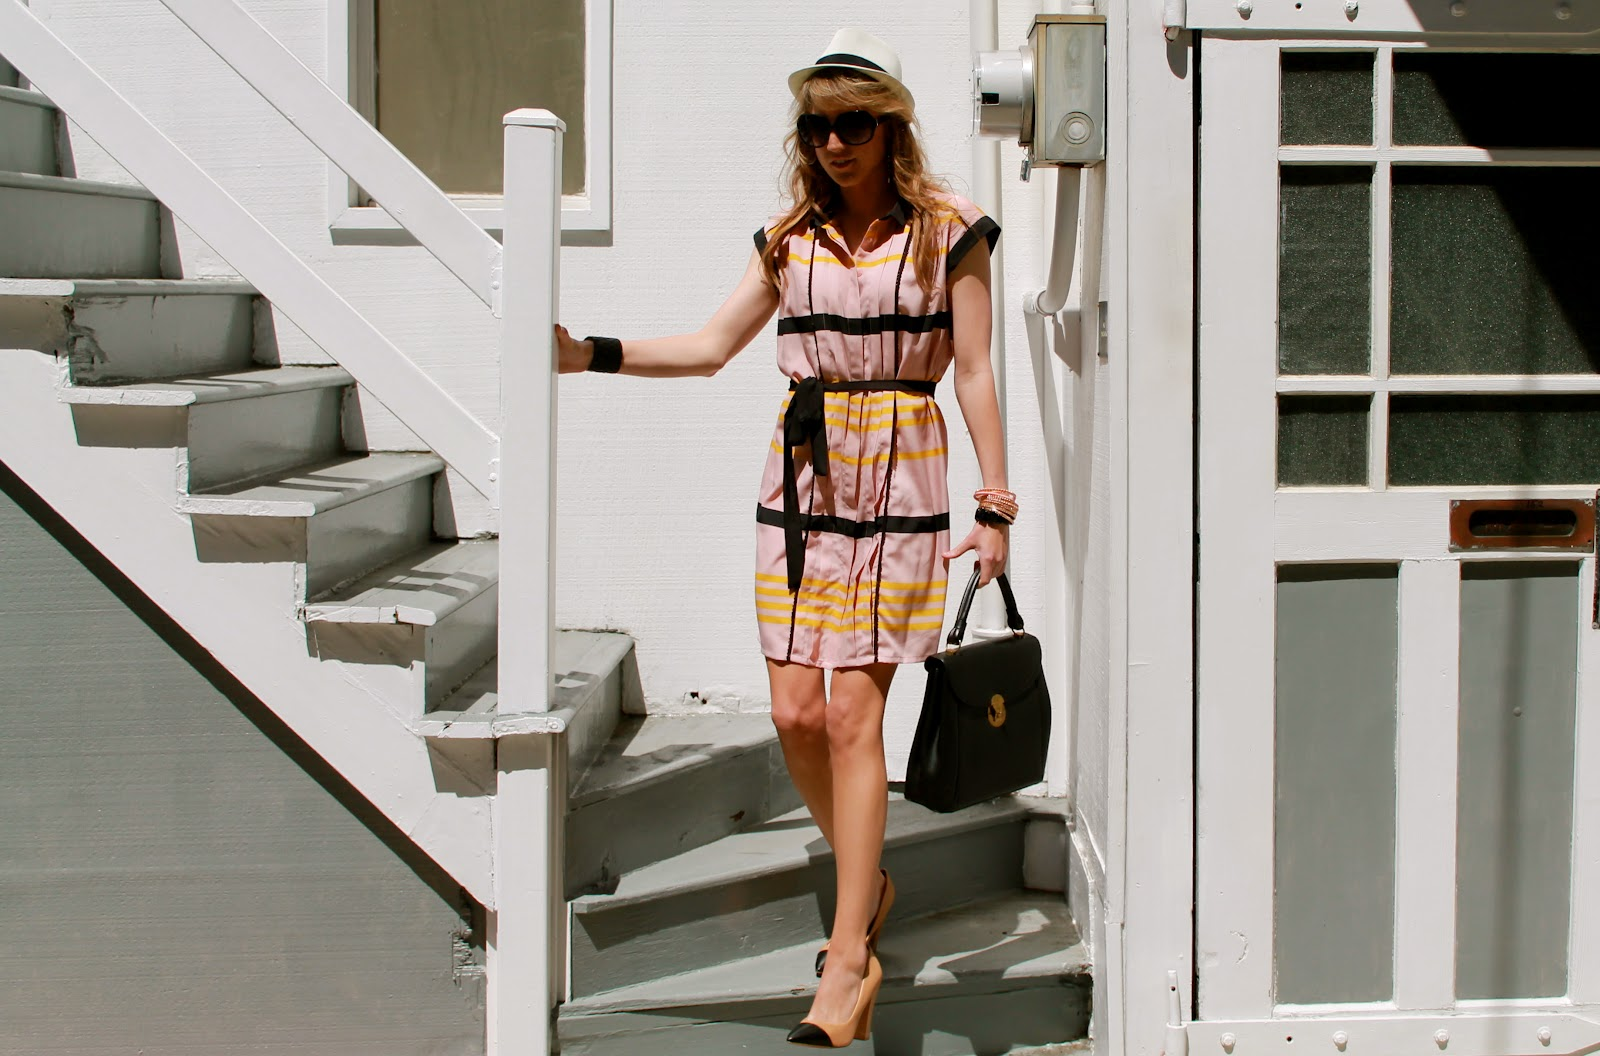 5 Tips To Get Out The Door Looking Feeling Good In 30